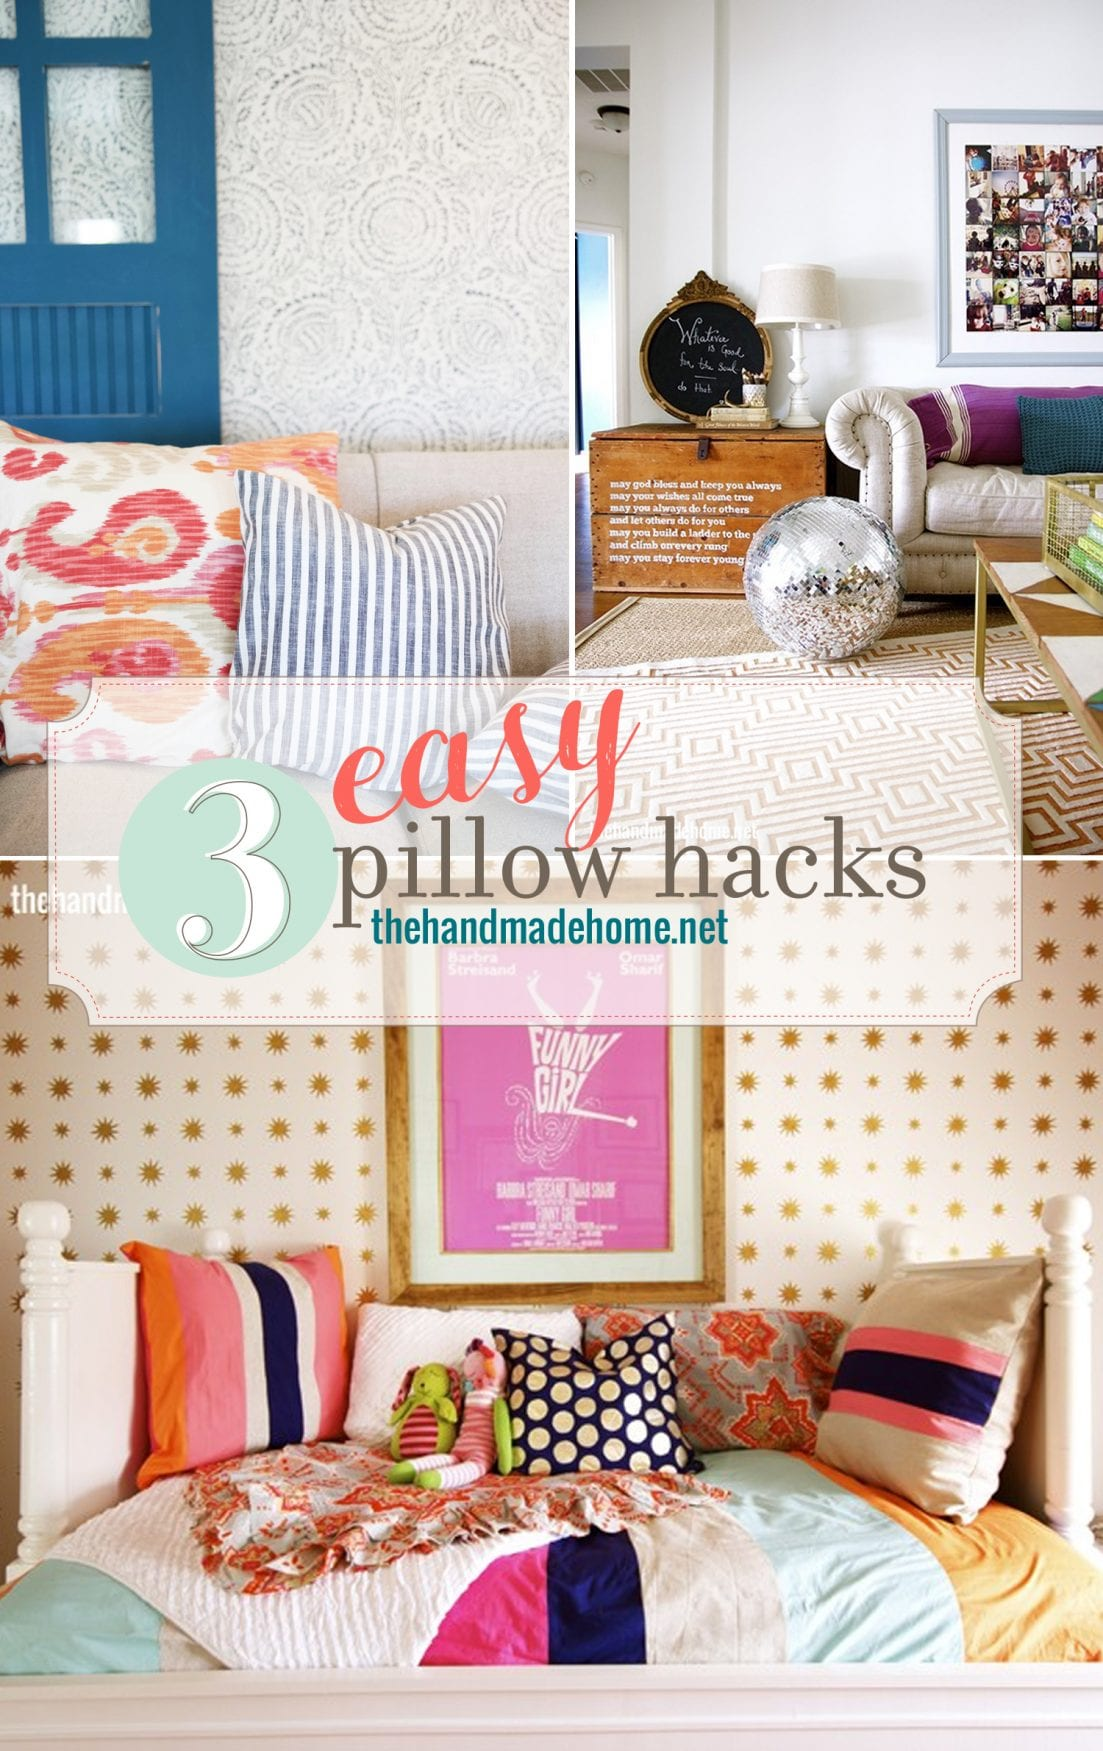 3 easy pillow hacks